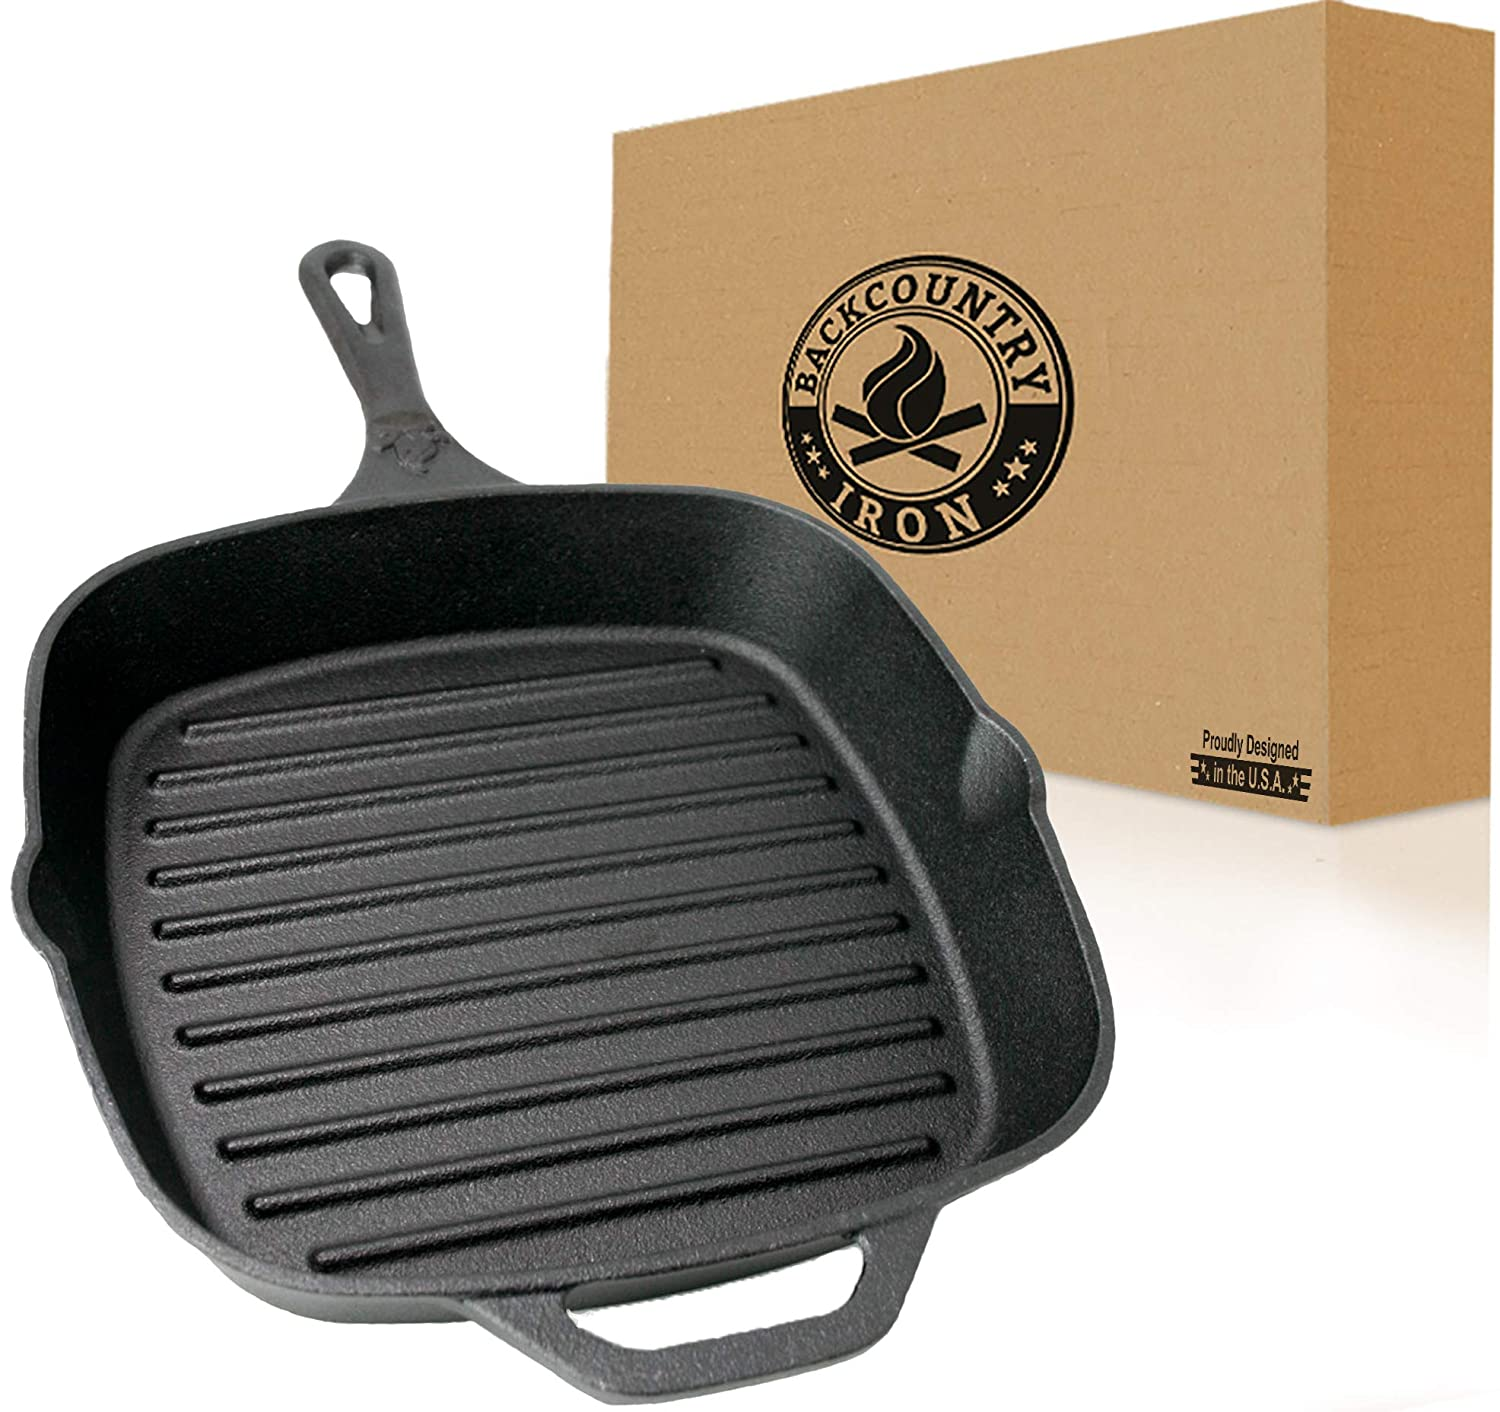 "Backcountry Cast Iron 10"" Medium Square Grill Pan (Pre-Seasoned for Non-Stick Like Surface, Cookware Range/Oven/Broiler/Grill Safe, Kitchen Skillet Restaurant Chef Quality)"